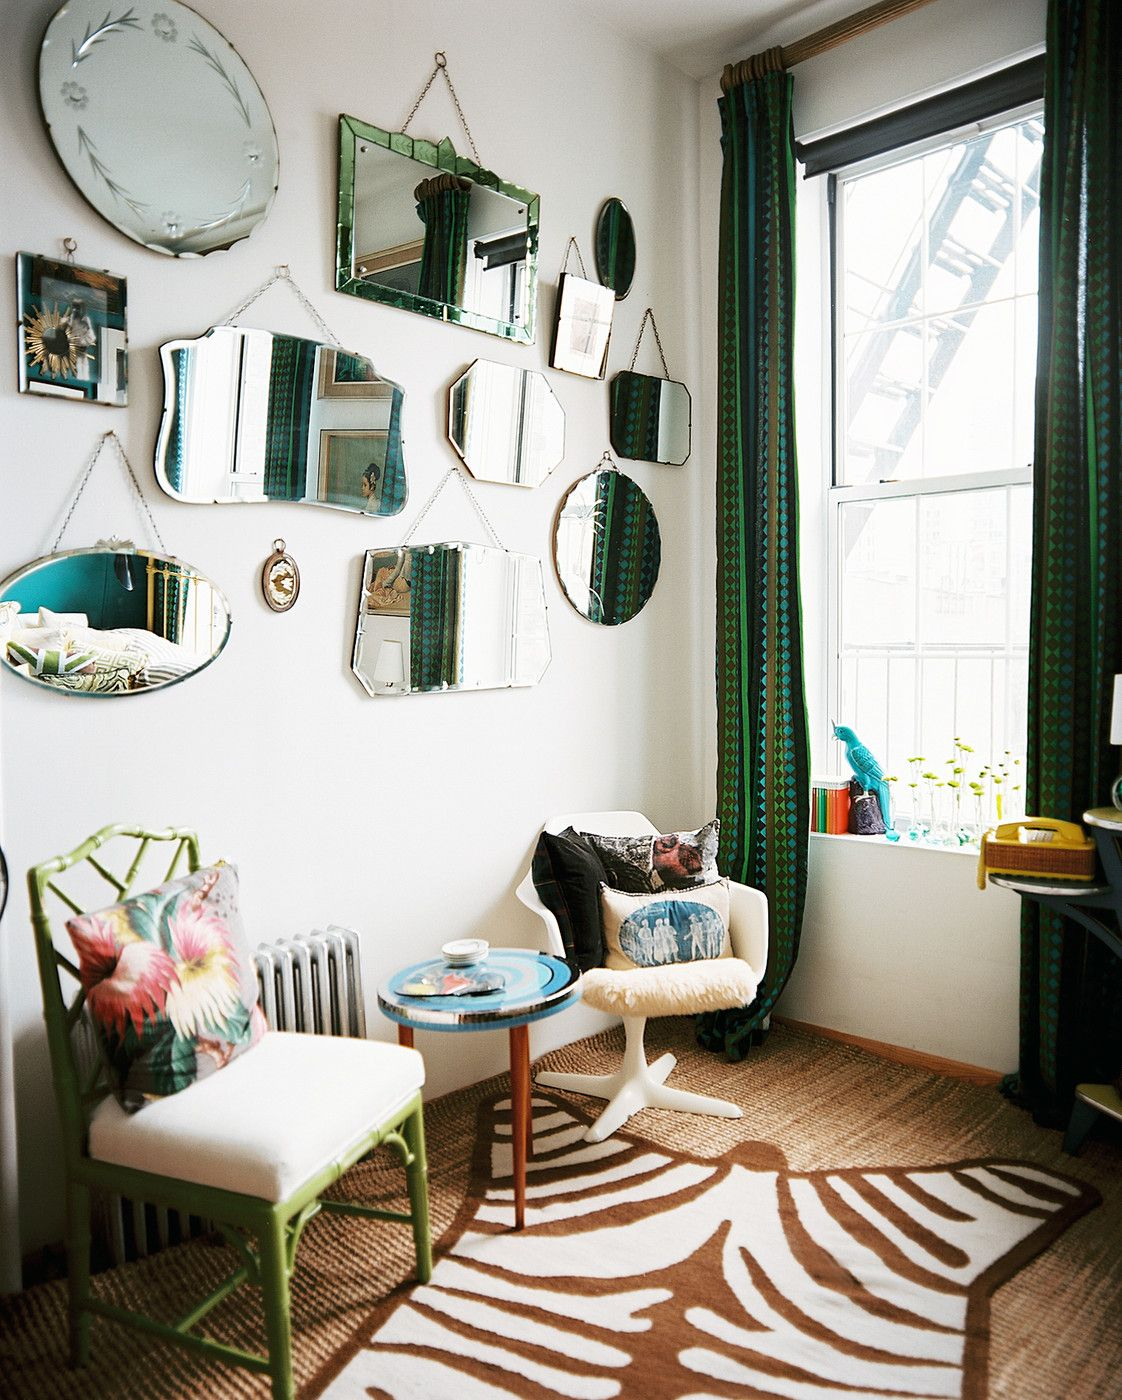 Ben Brougham Photos | Zebra print rug, Living rooms and Vintage mirrors